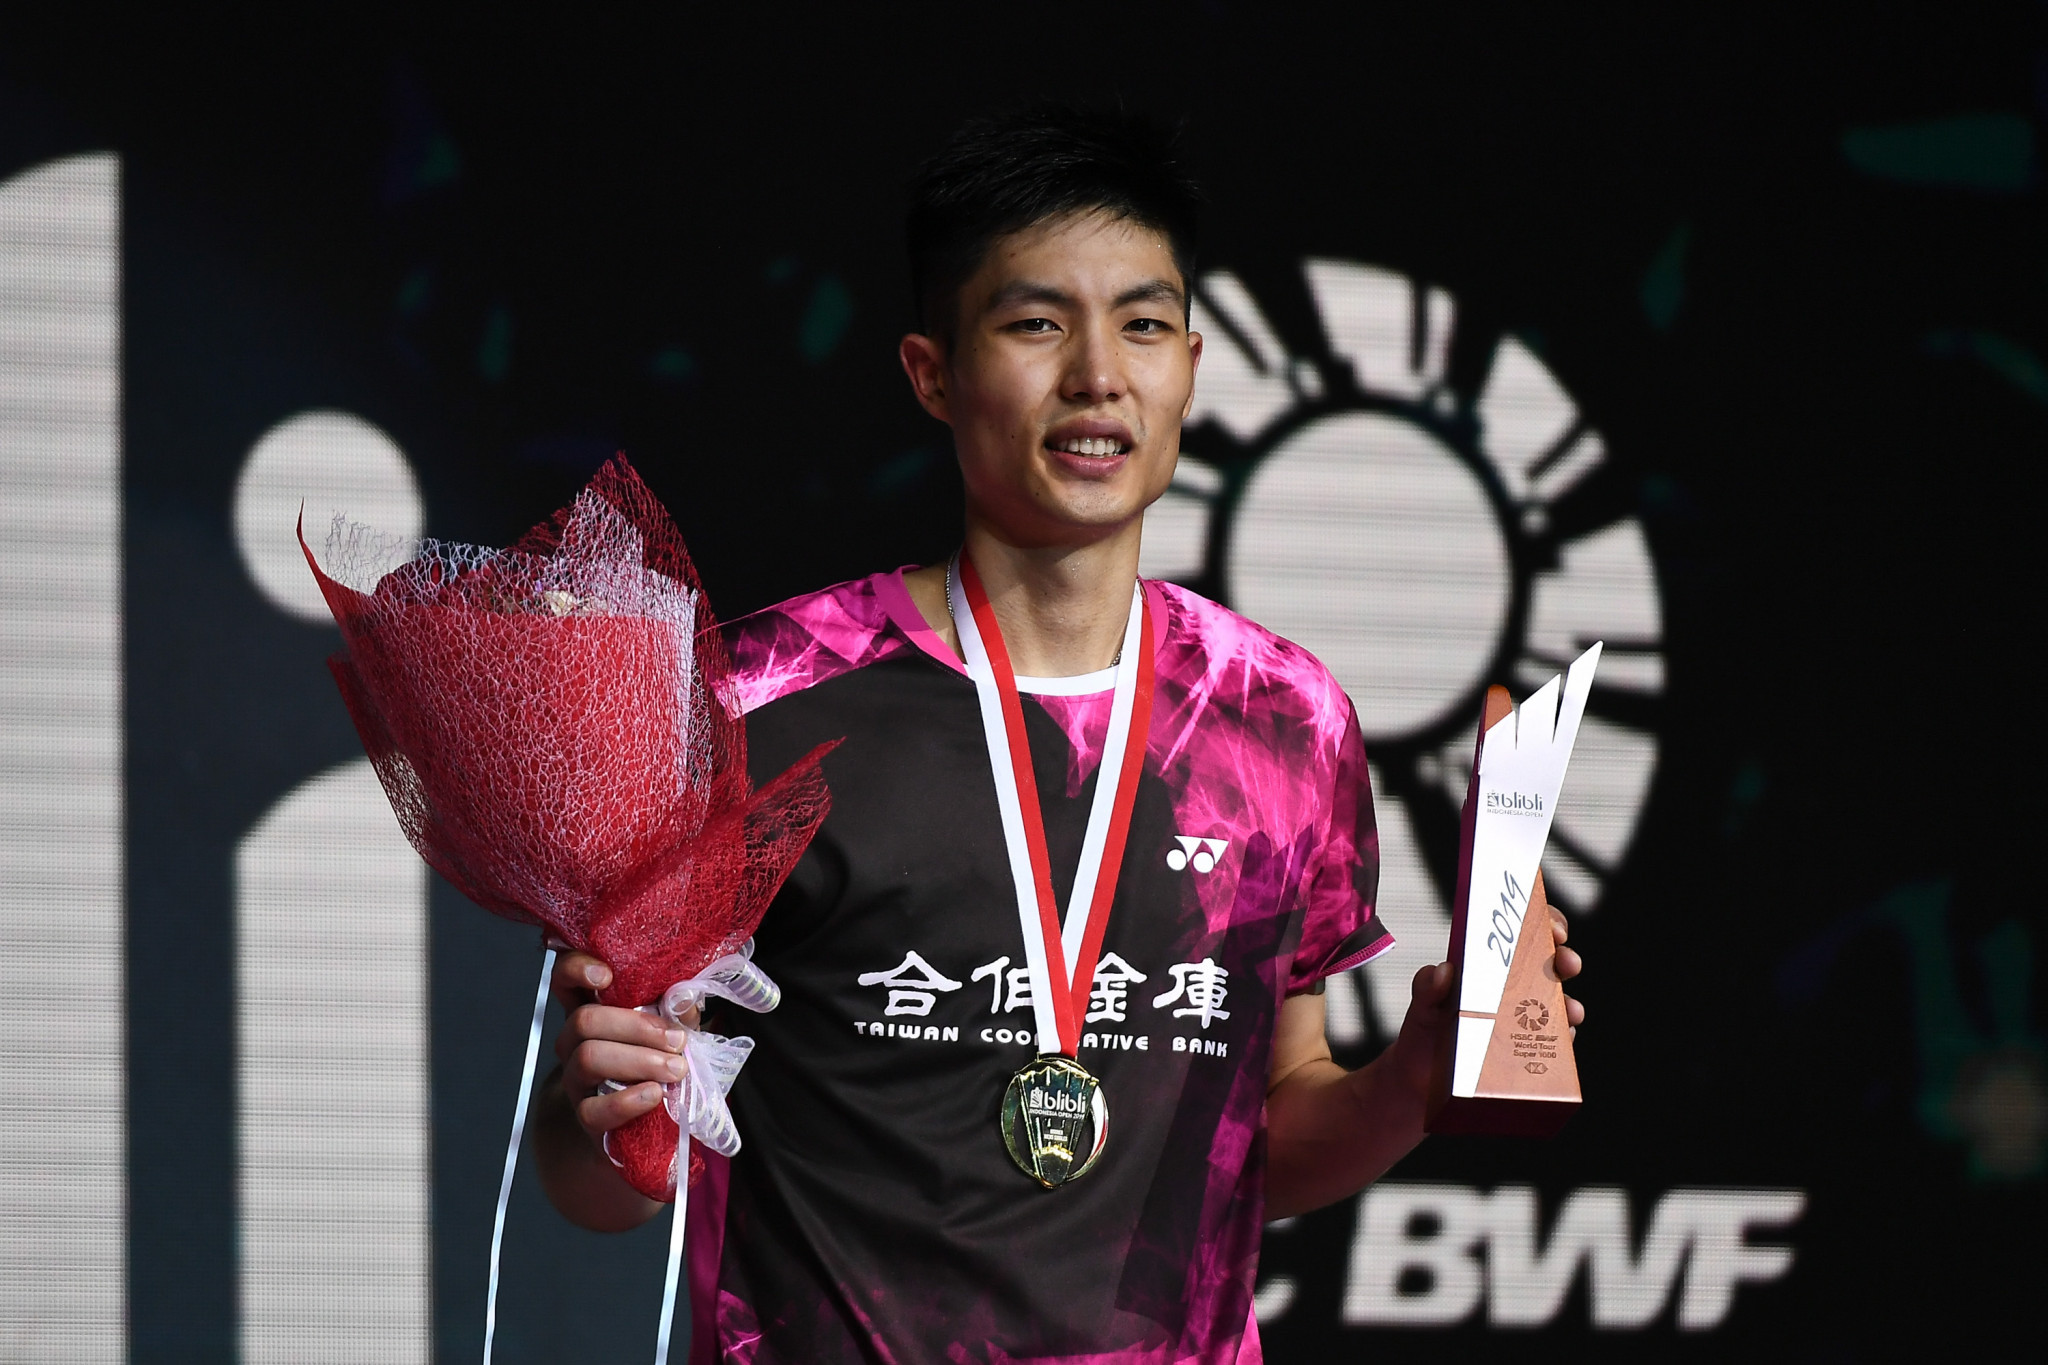 Chou and Yamaguchi seal titles at BWF Indonesia Open